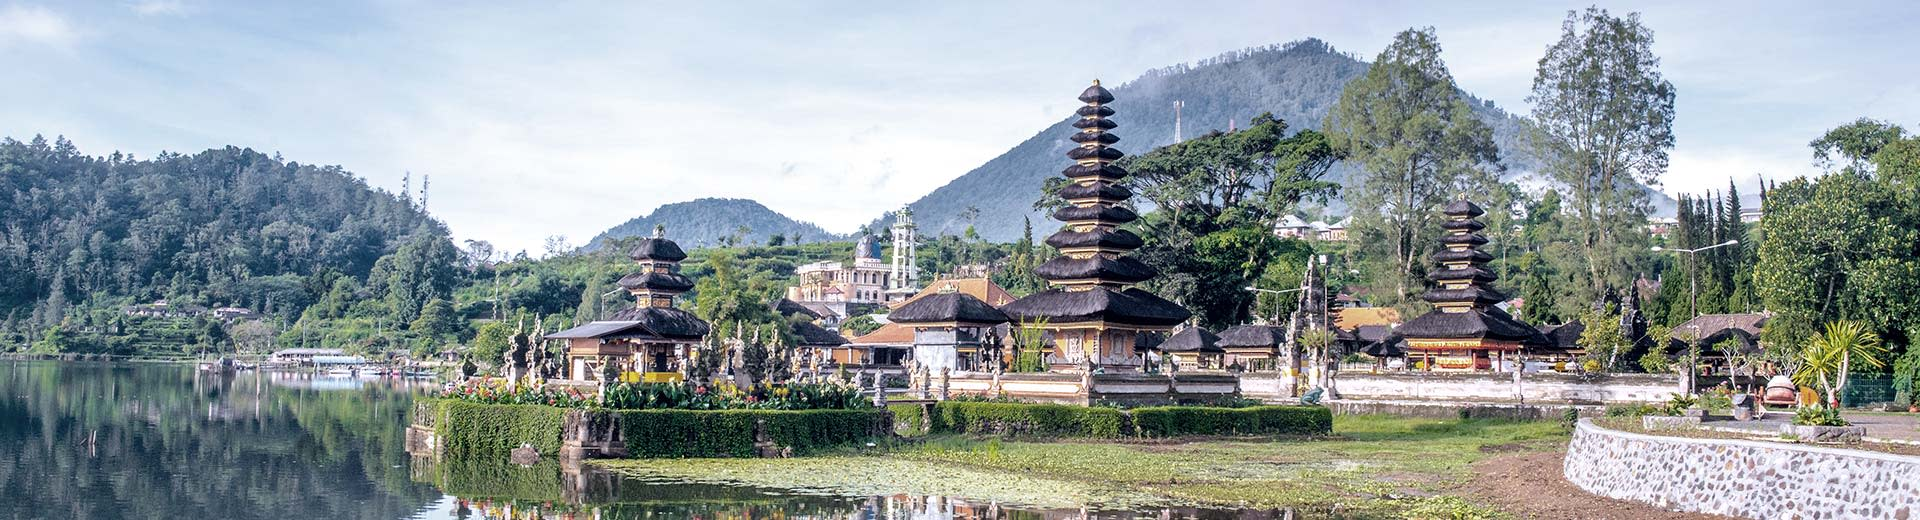 Ulun Danu Beratan Temple in Bali alongside the calm Beratan lake with mountains in the background